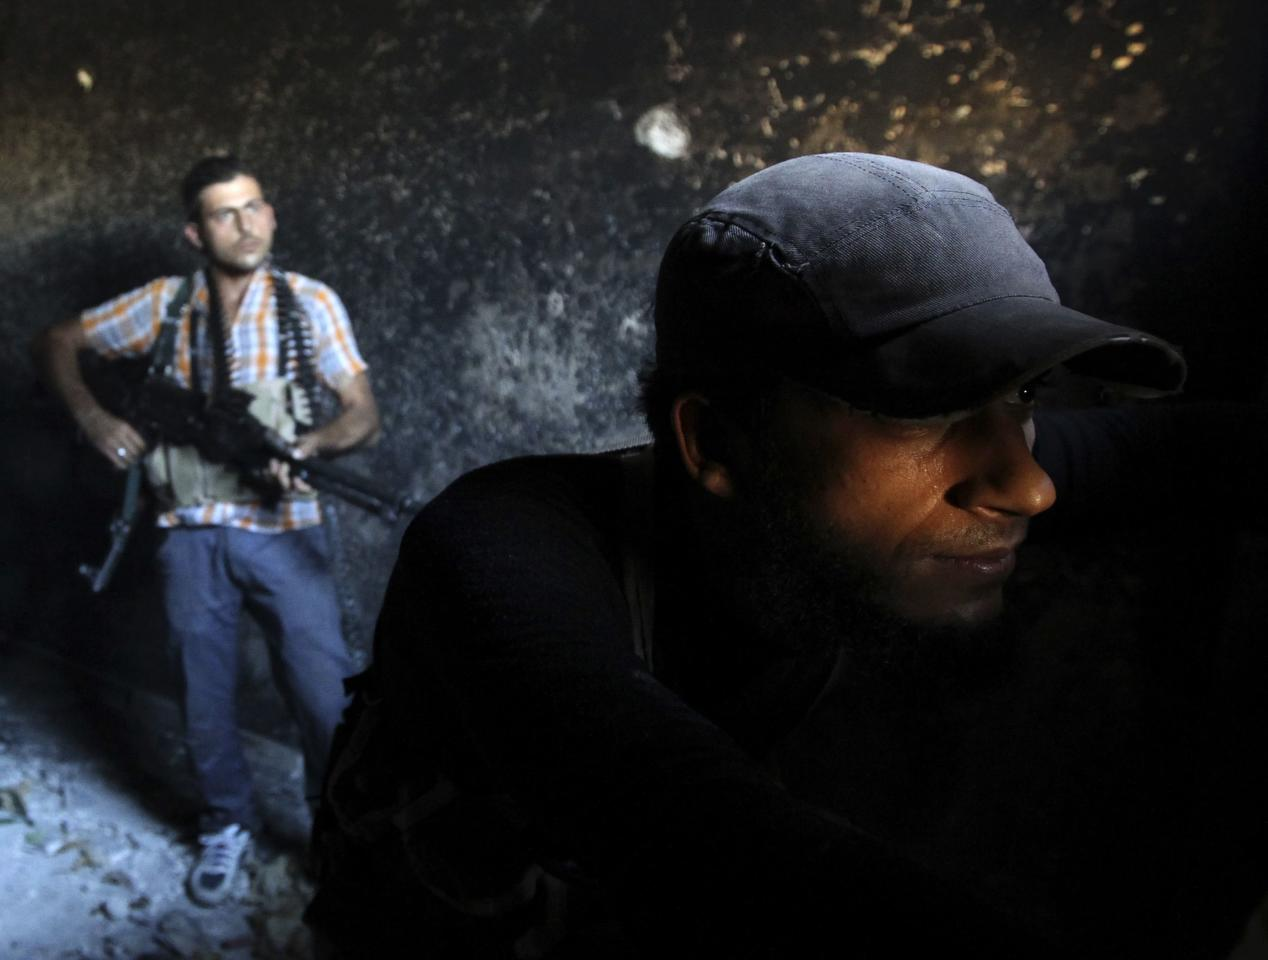 Free Syrian Army fighters take their shooting positions inside a house which was burnt in Ashrafieh, Aleppo September 20, 2013. REUTERS/Muzaffar Salman (SYRIA - Tags: POLITICS CIVIL UNREST CONFLICT TPX IMAGES OF THE DAY)